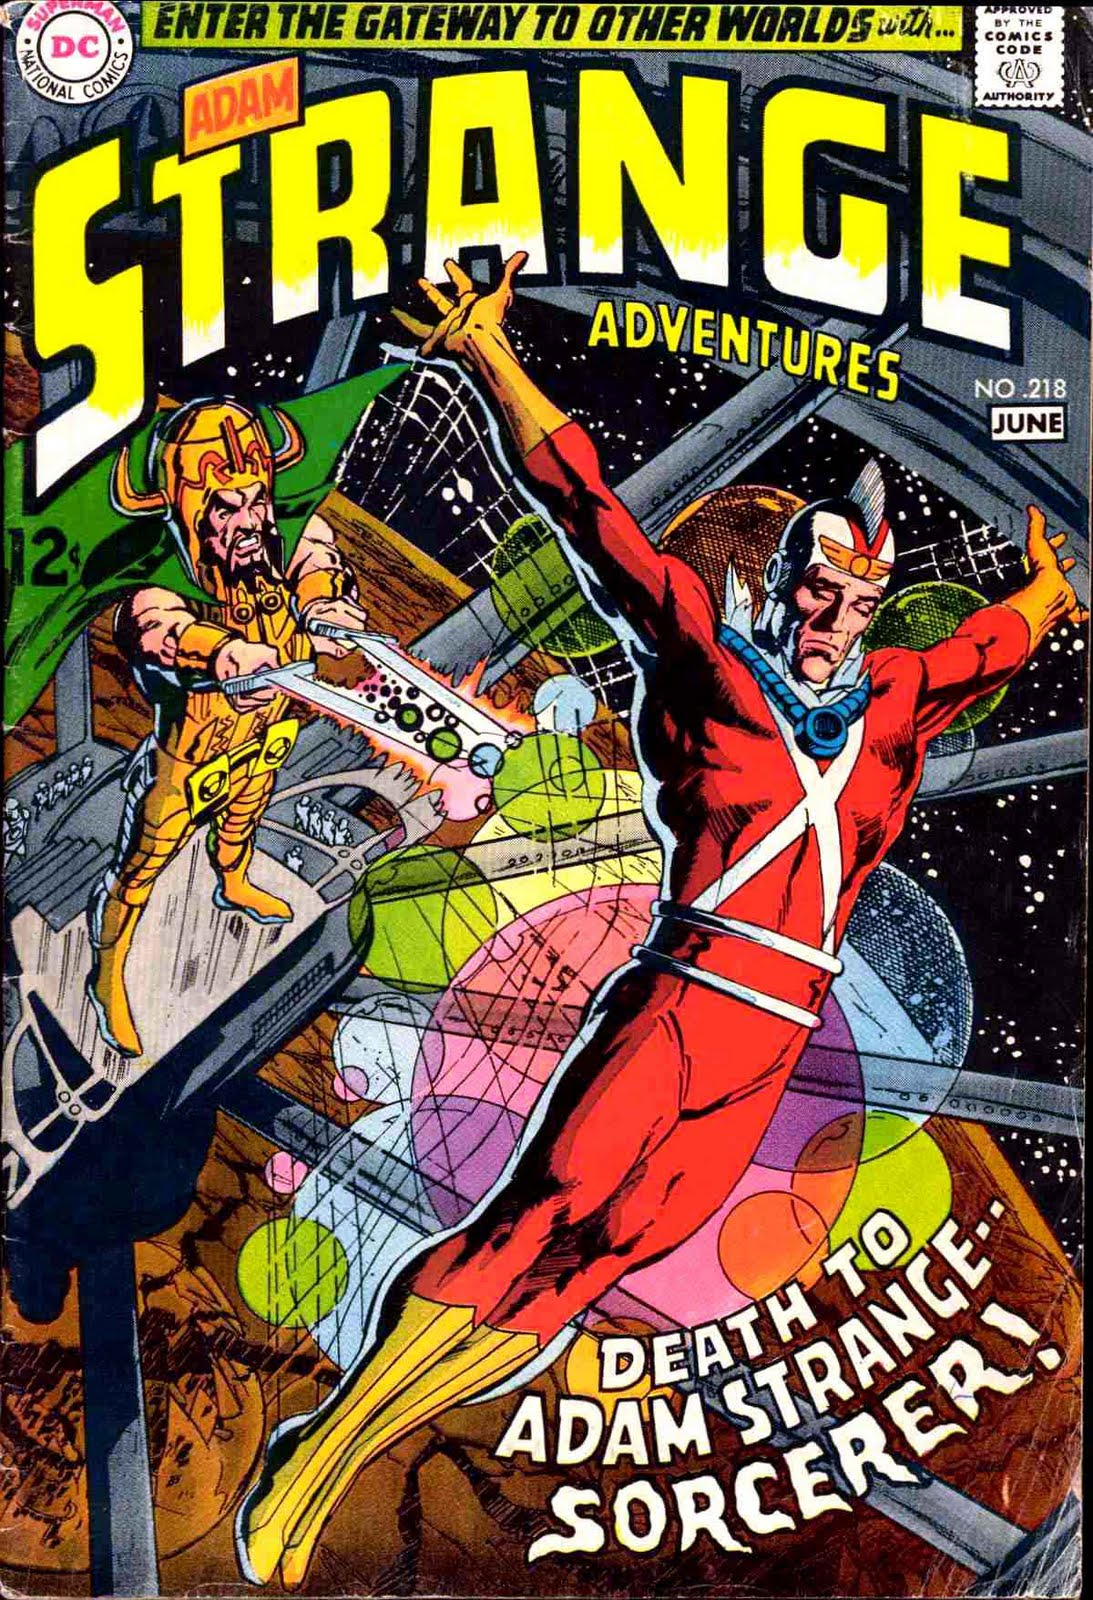 Strange Adventures v1 #218 dc comic book cover art by Neal Adams